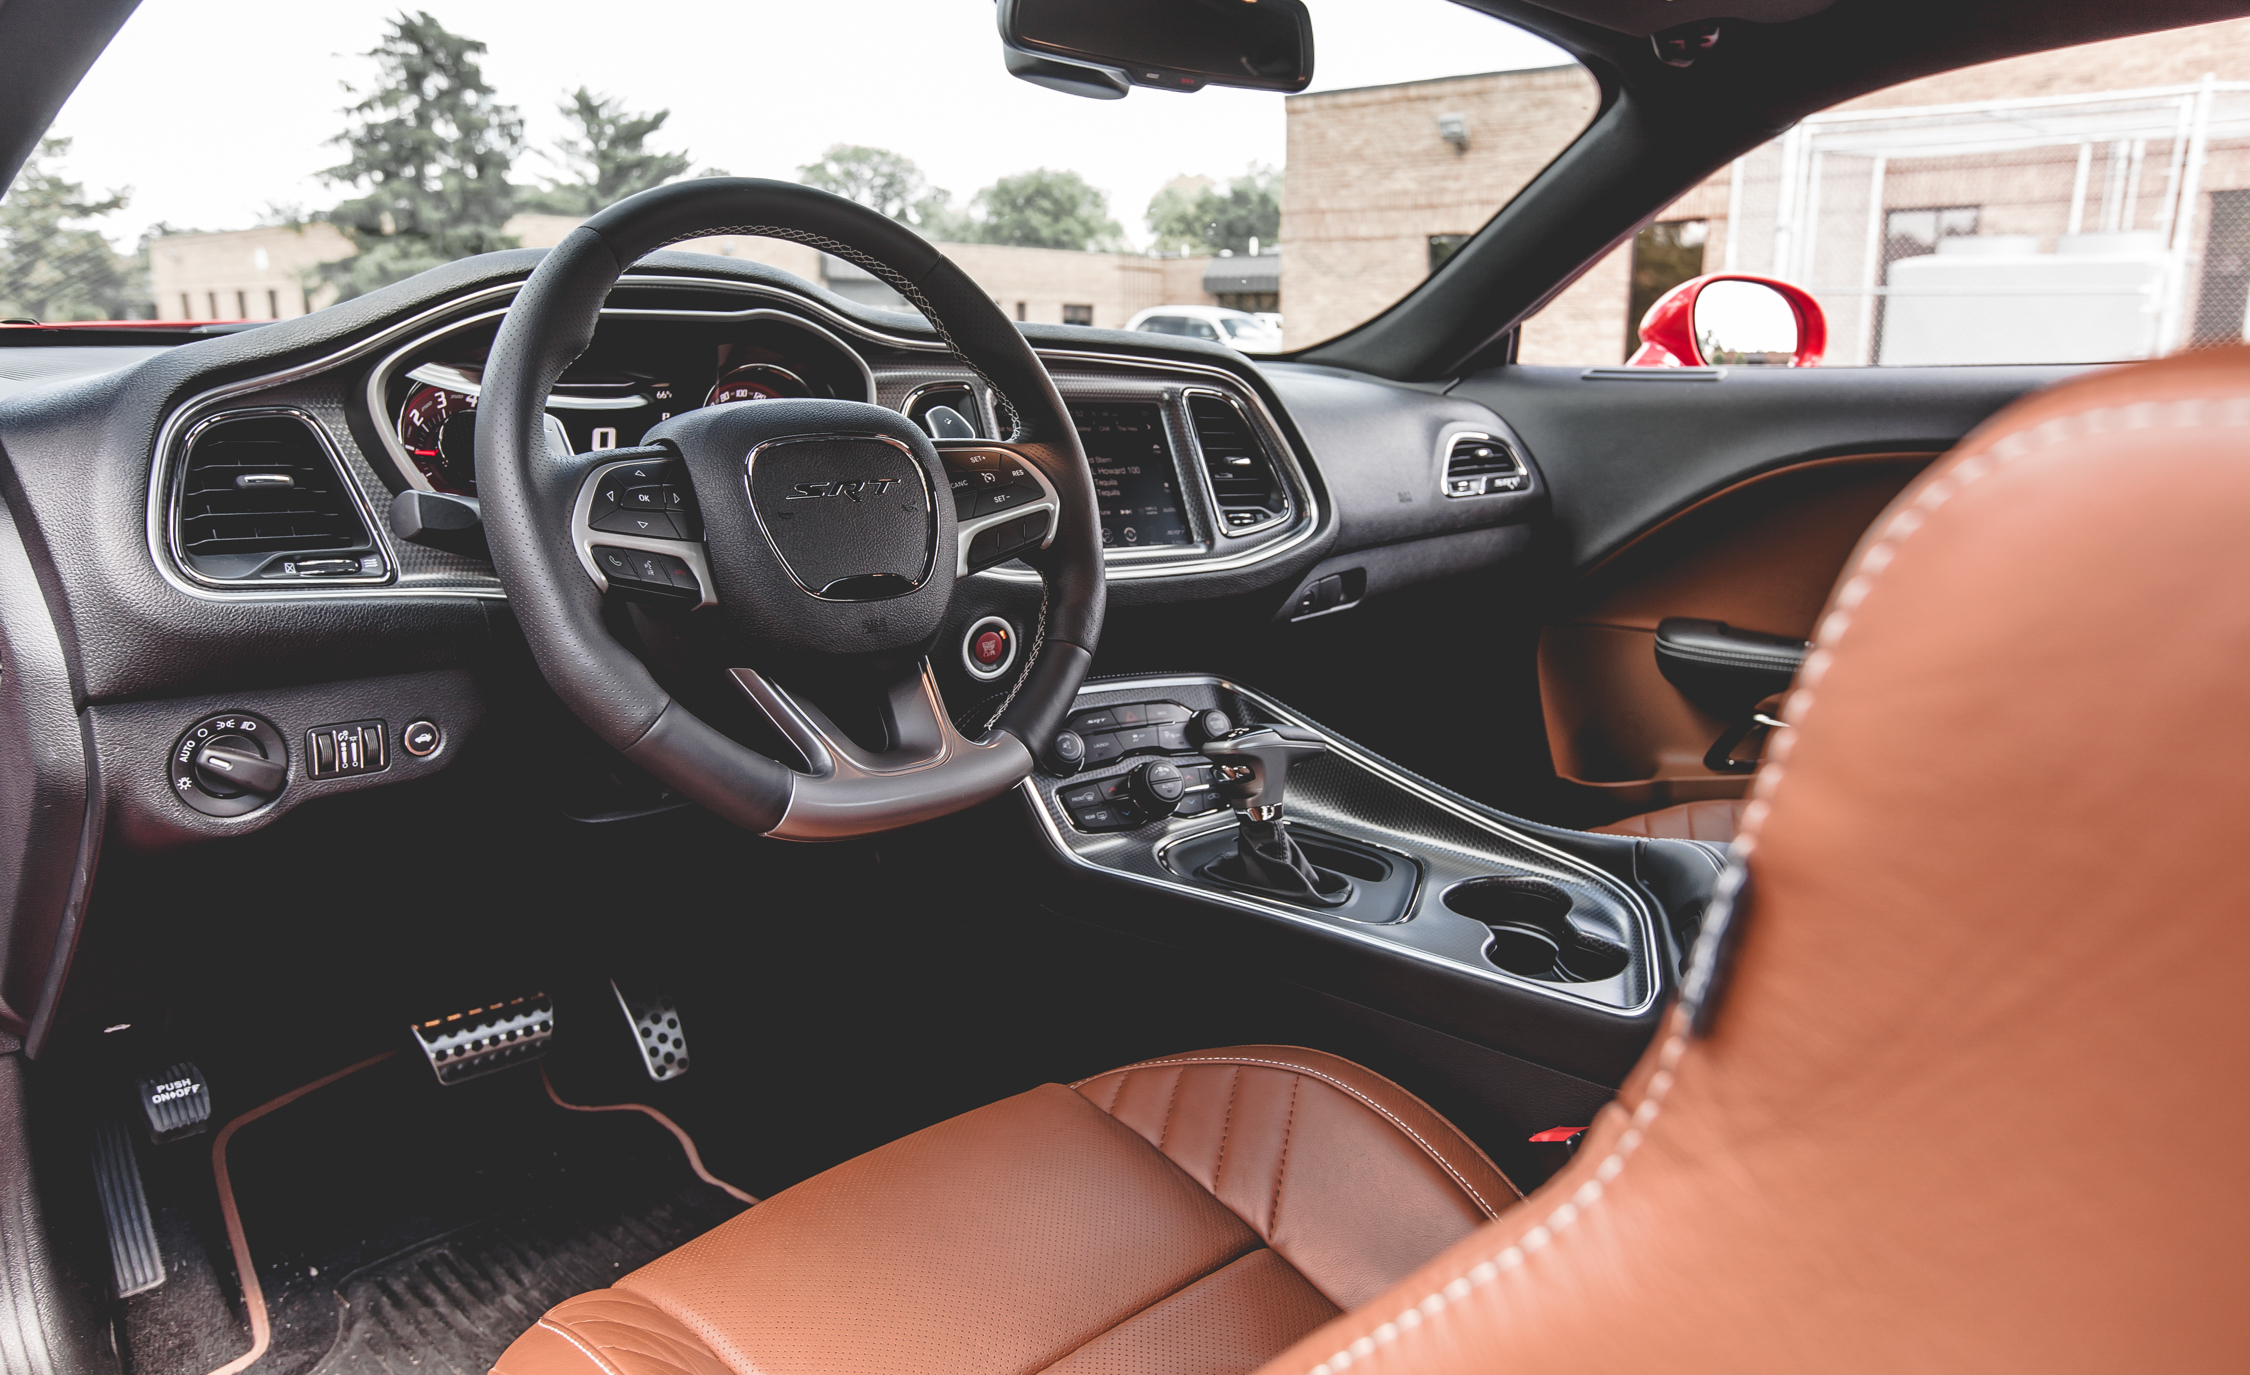 2015 Dodge Challenger SRT Hellcat Interior (Photo 20 of 22)